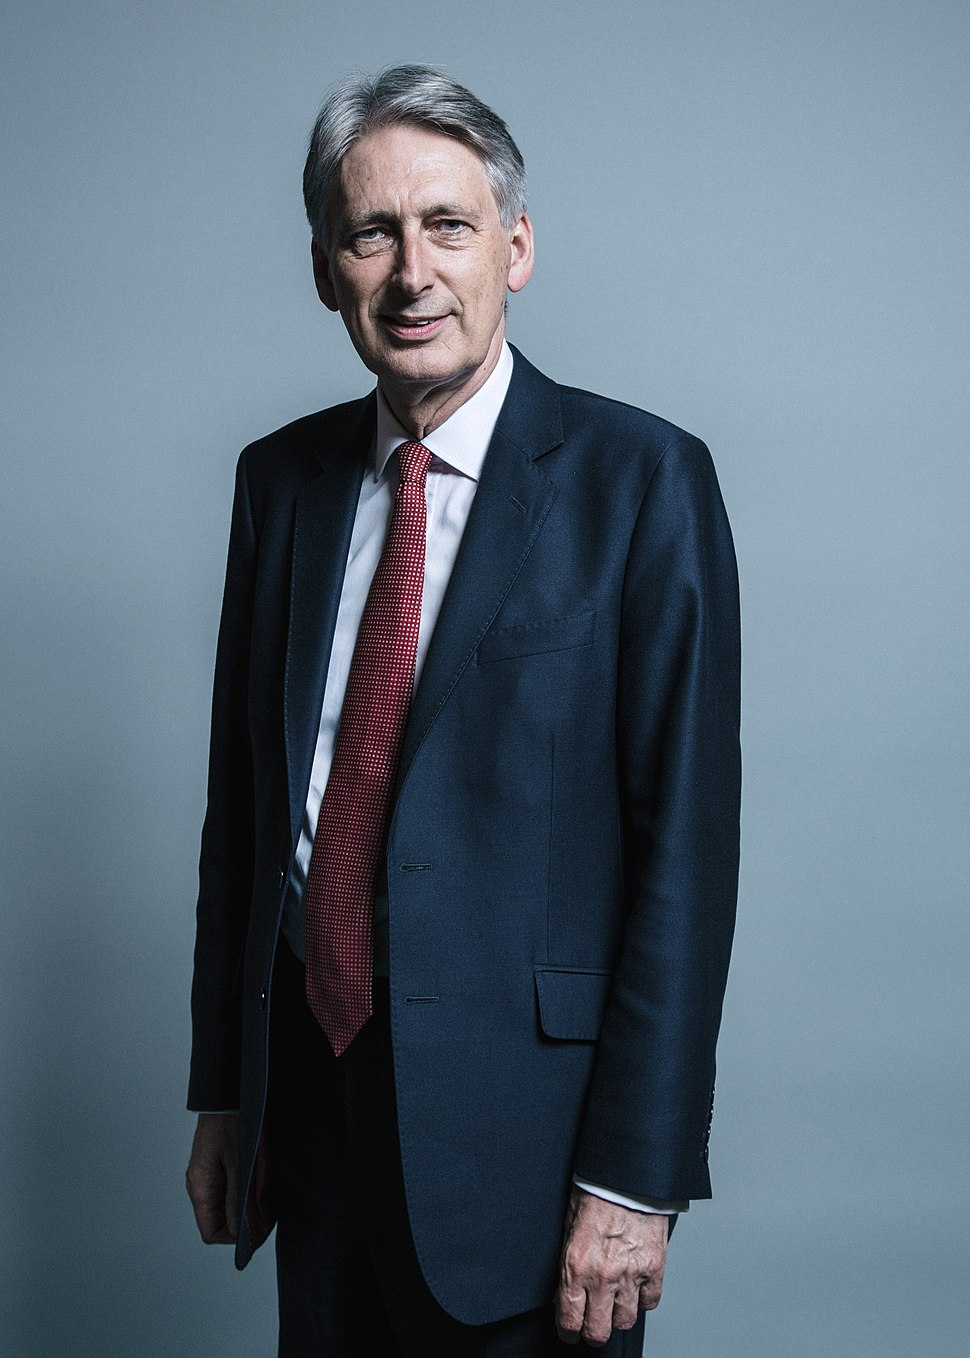 Official portrait of Mr Philip Hammond